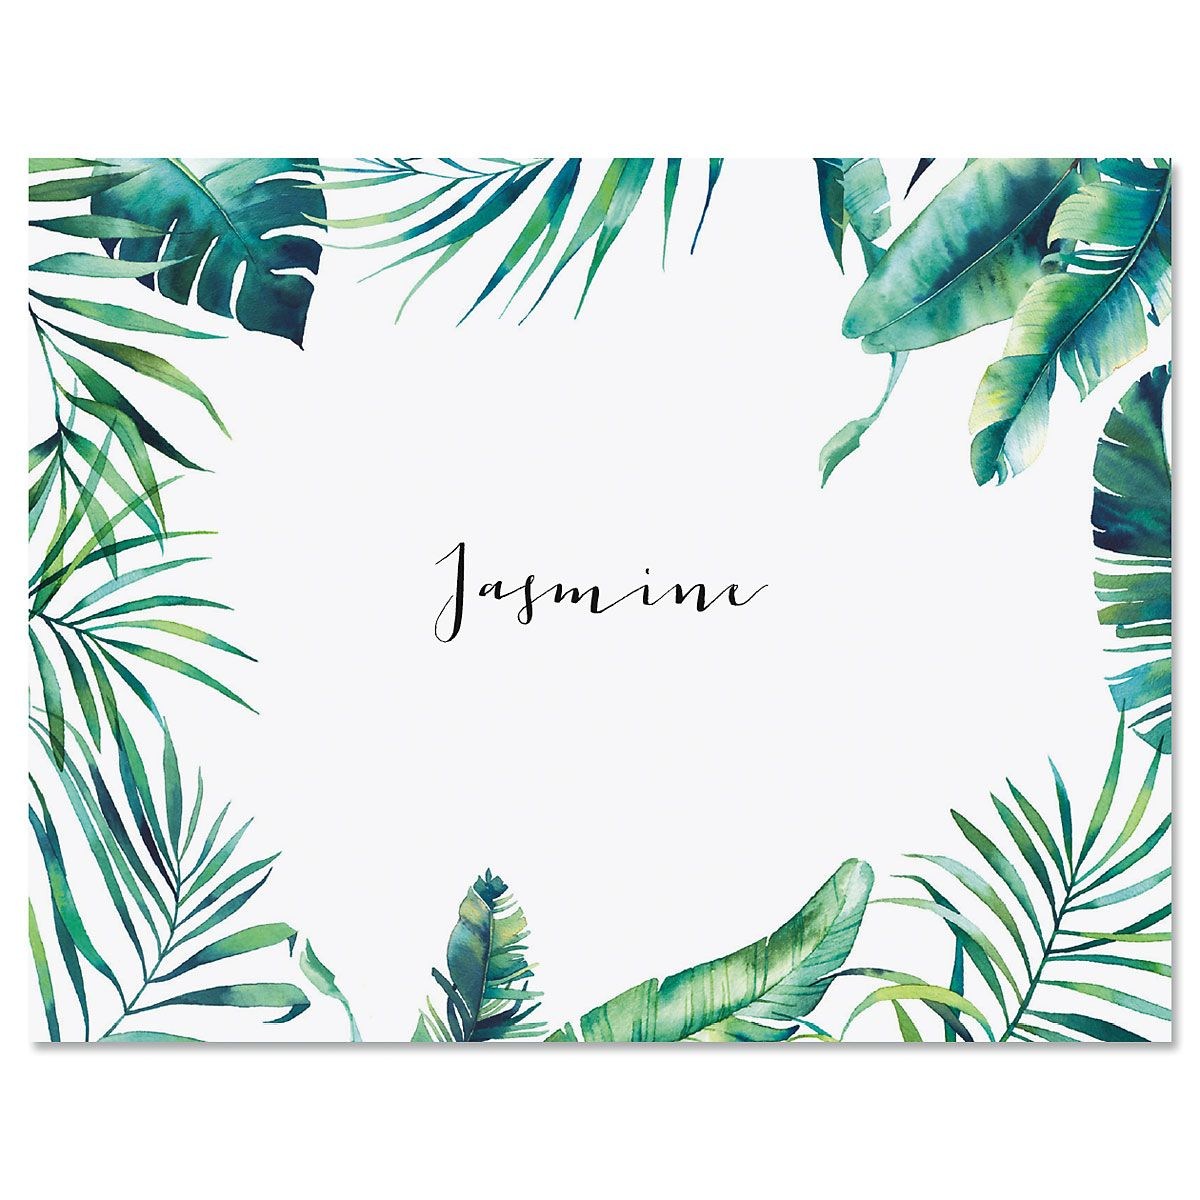 Leafy Greens Border Personalized Note Cards